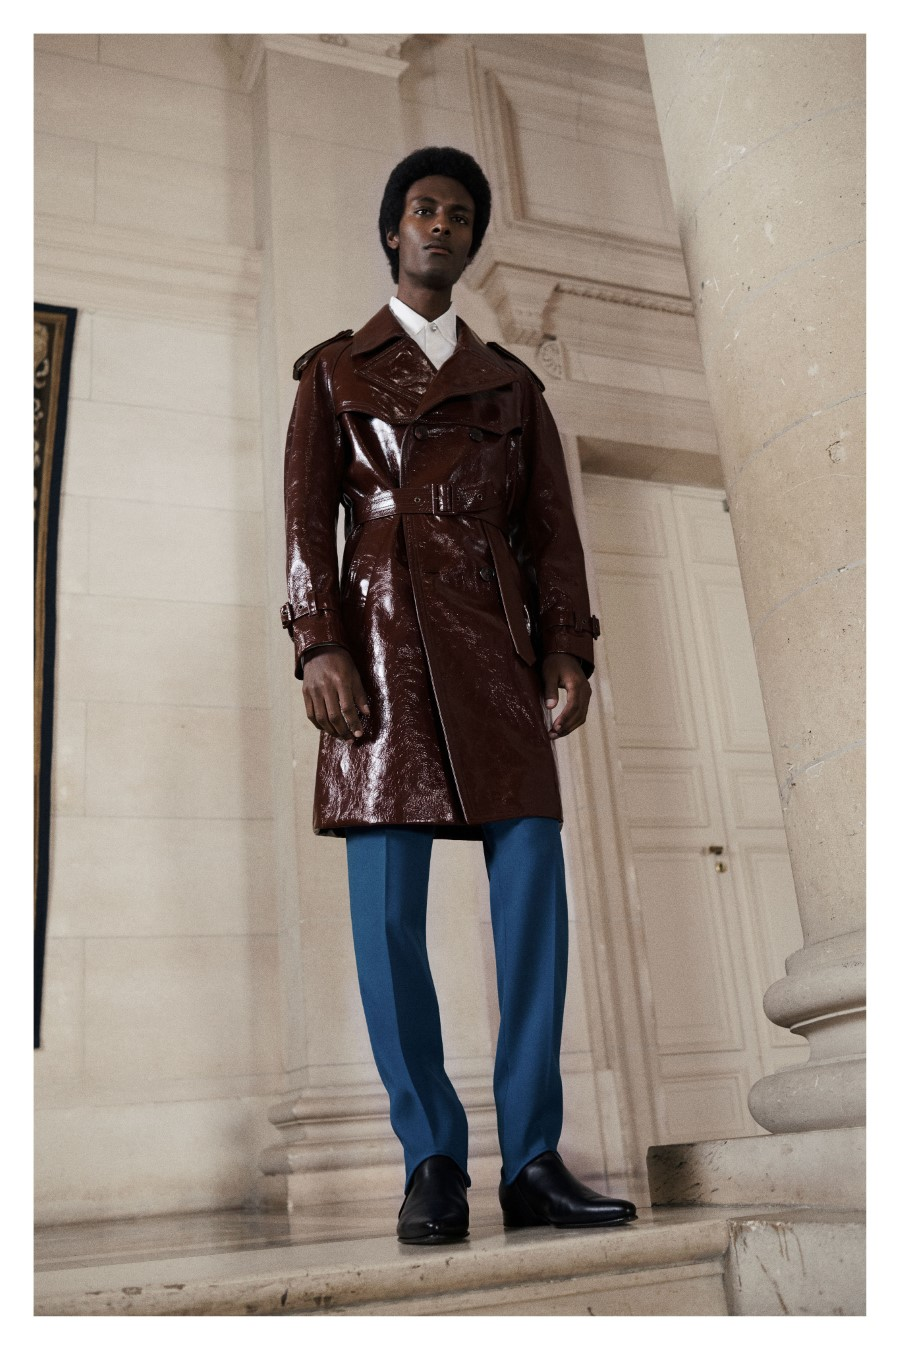 Givenchy Men's Fall Winter 2019 Lookbook